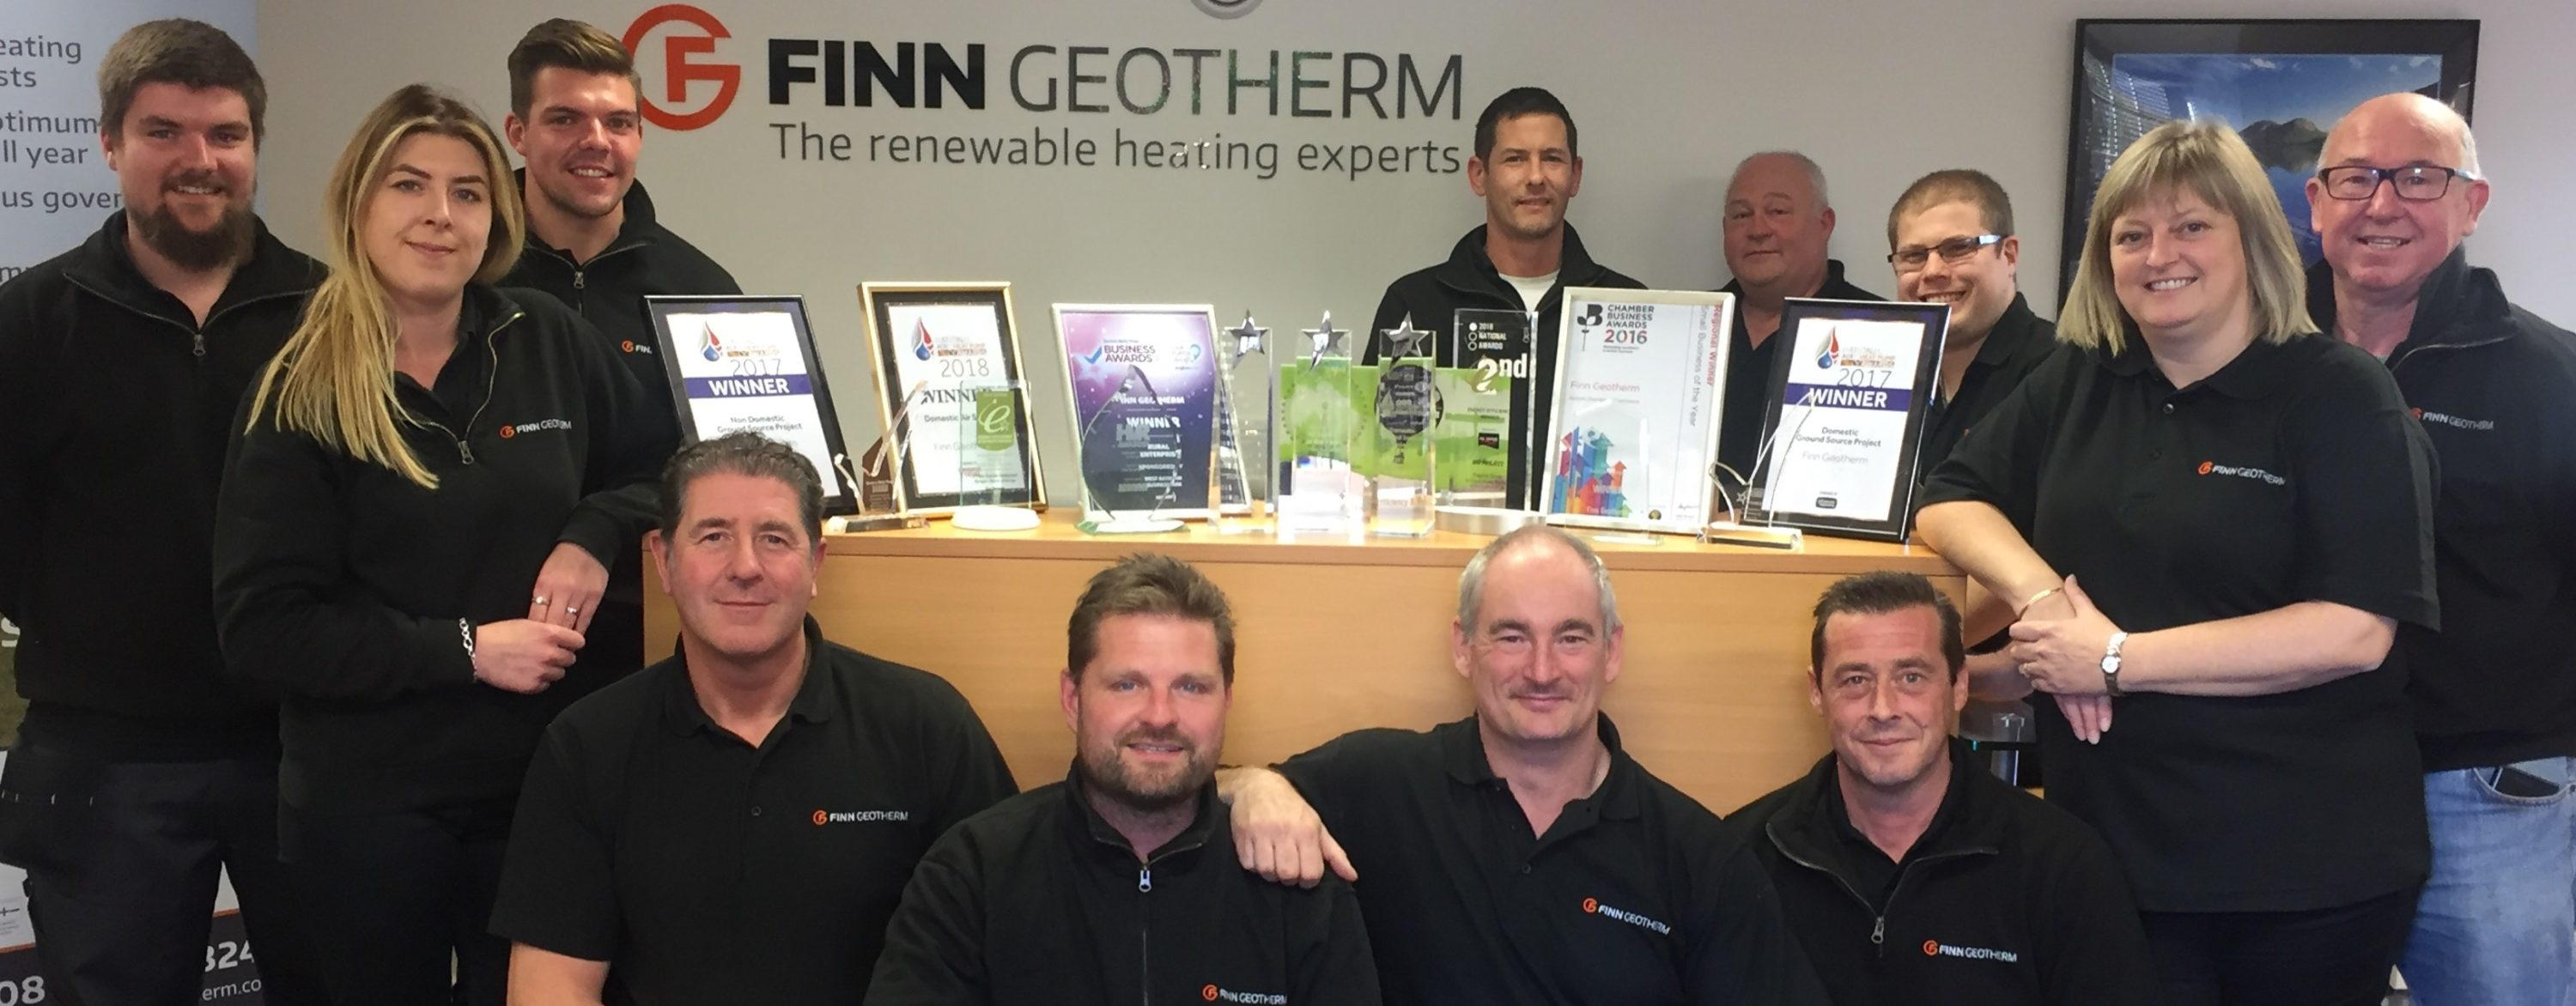 the expert heat pump installer team at Finn Geotherm